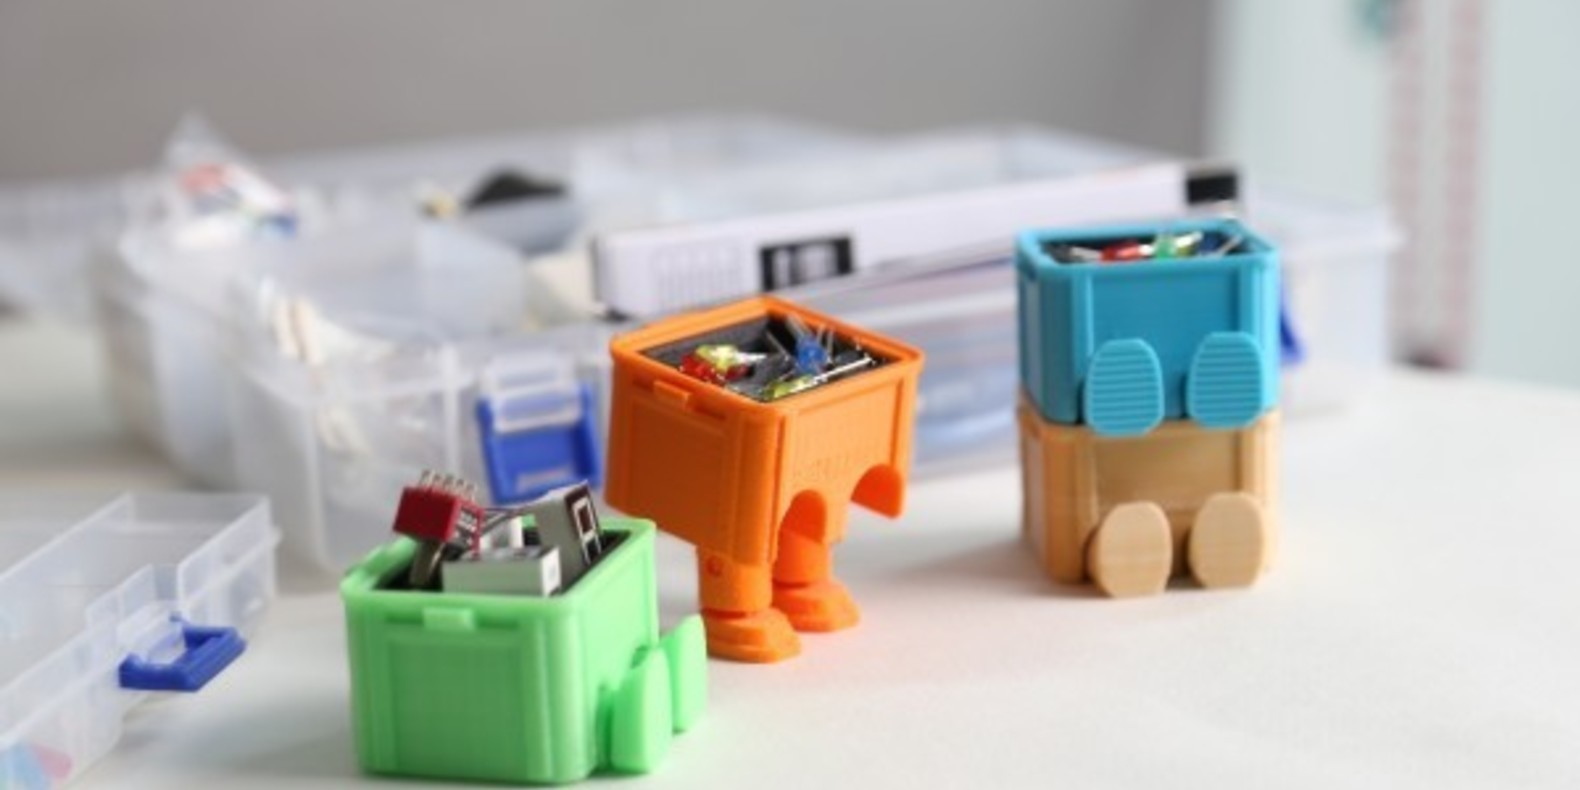 Step Box Step, the mini toolboxes printed in 3D